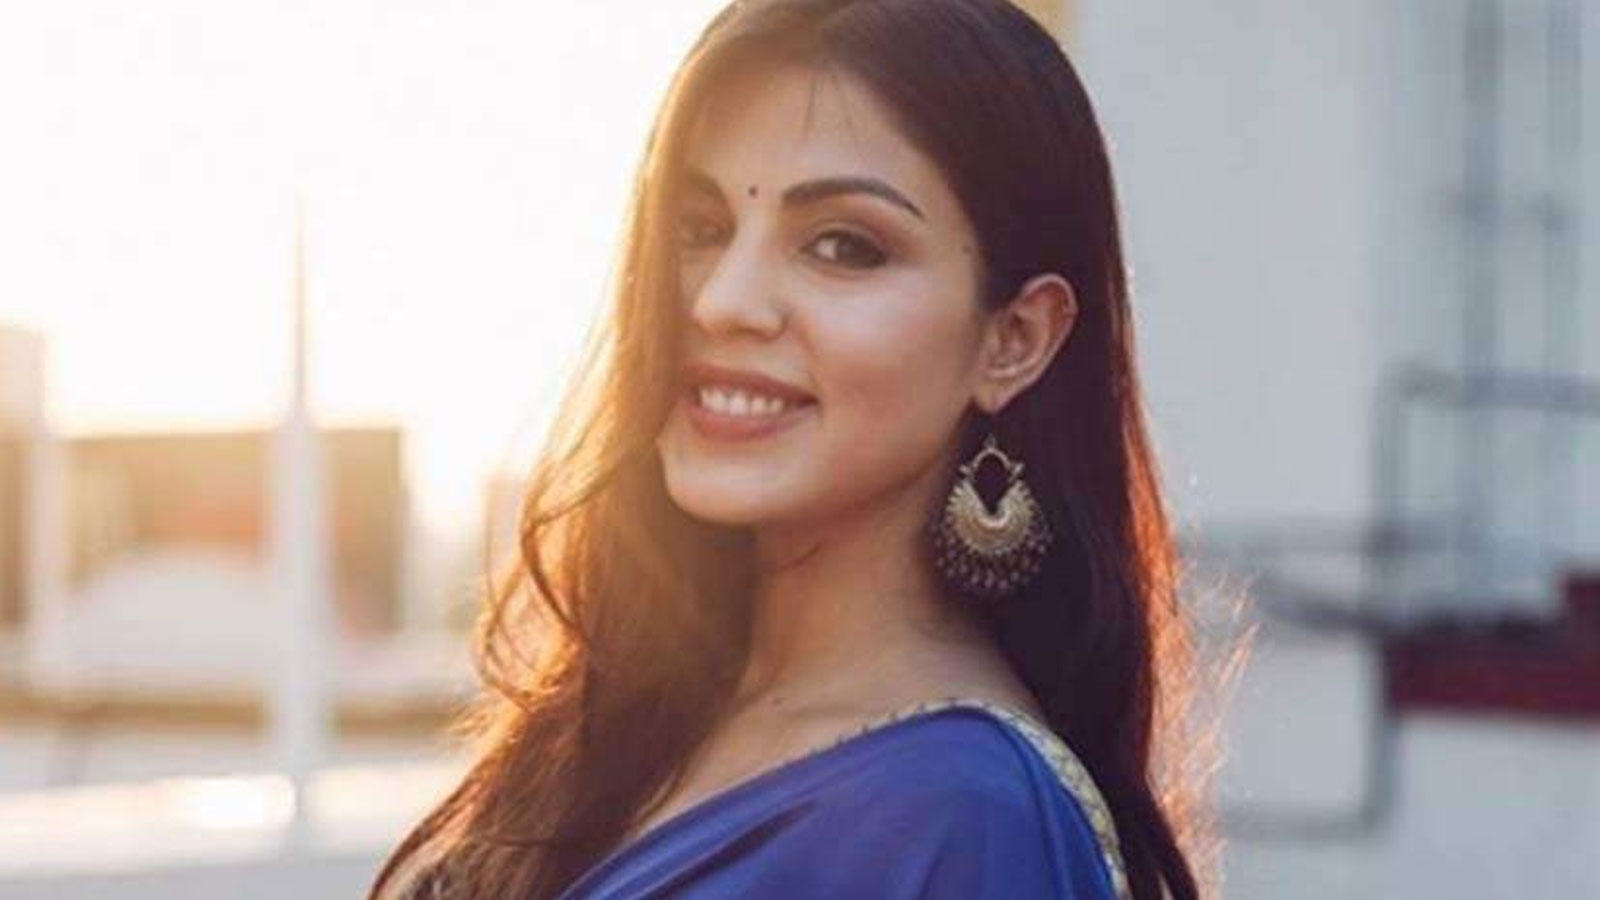 heres-how-netizens-reacted-after-reports-of-rhea-chakraborty-biopic-being-in-pipeline-went-viral